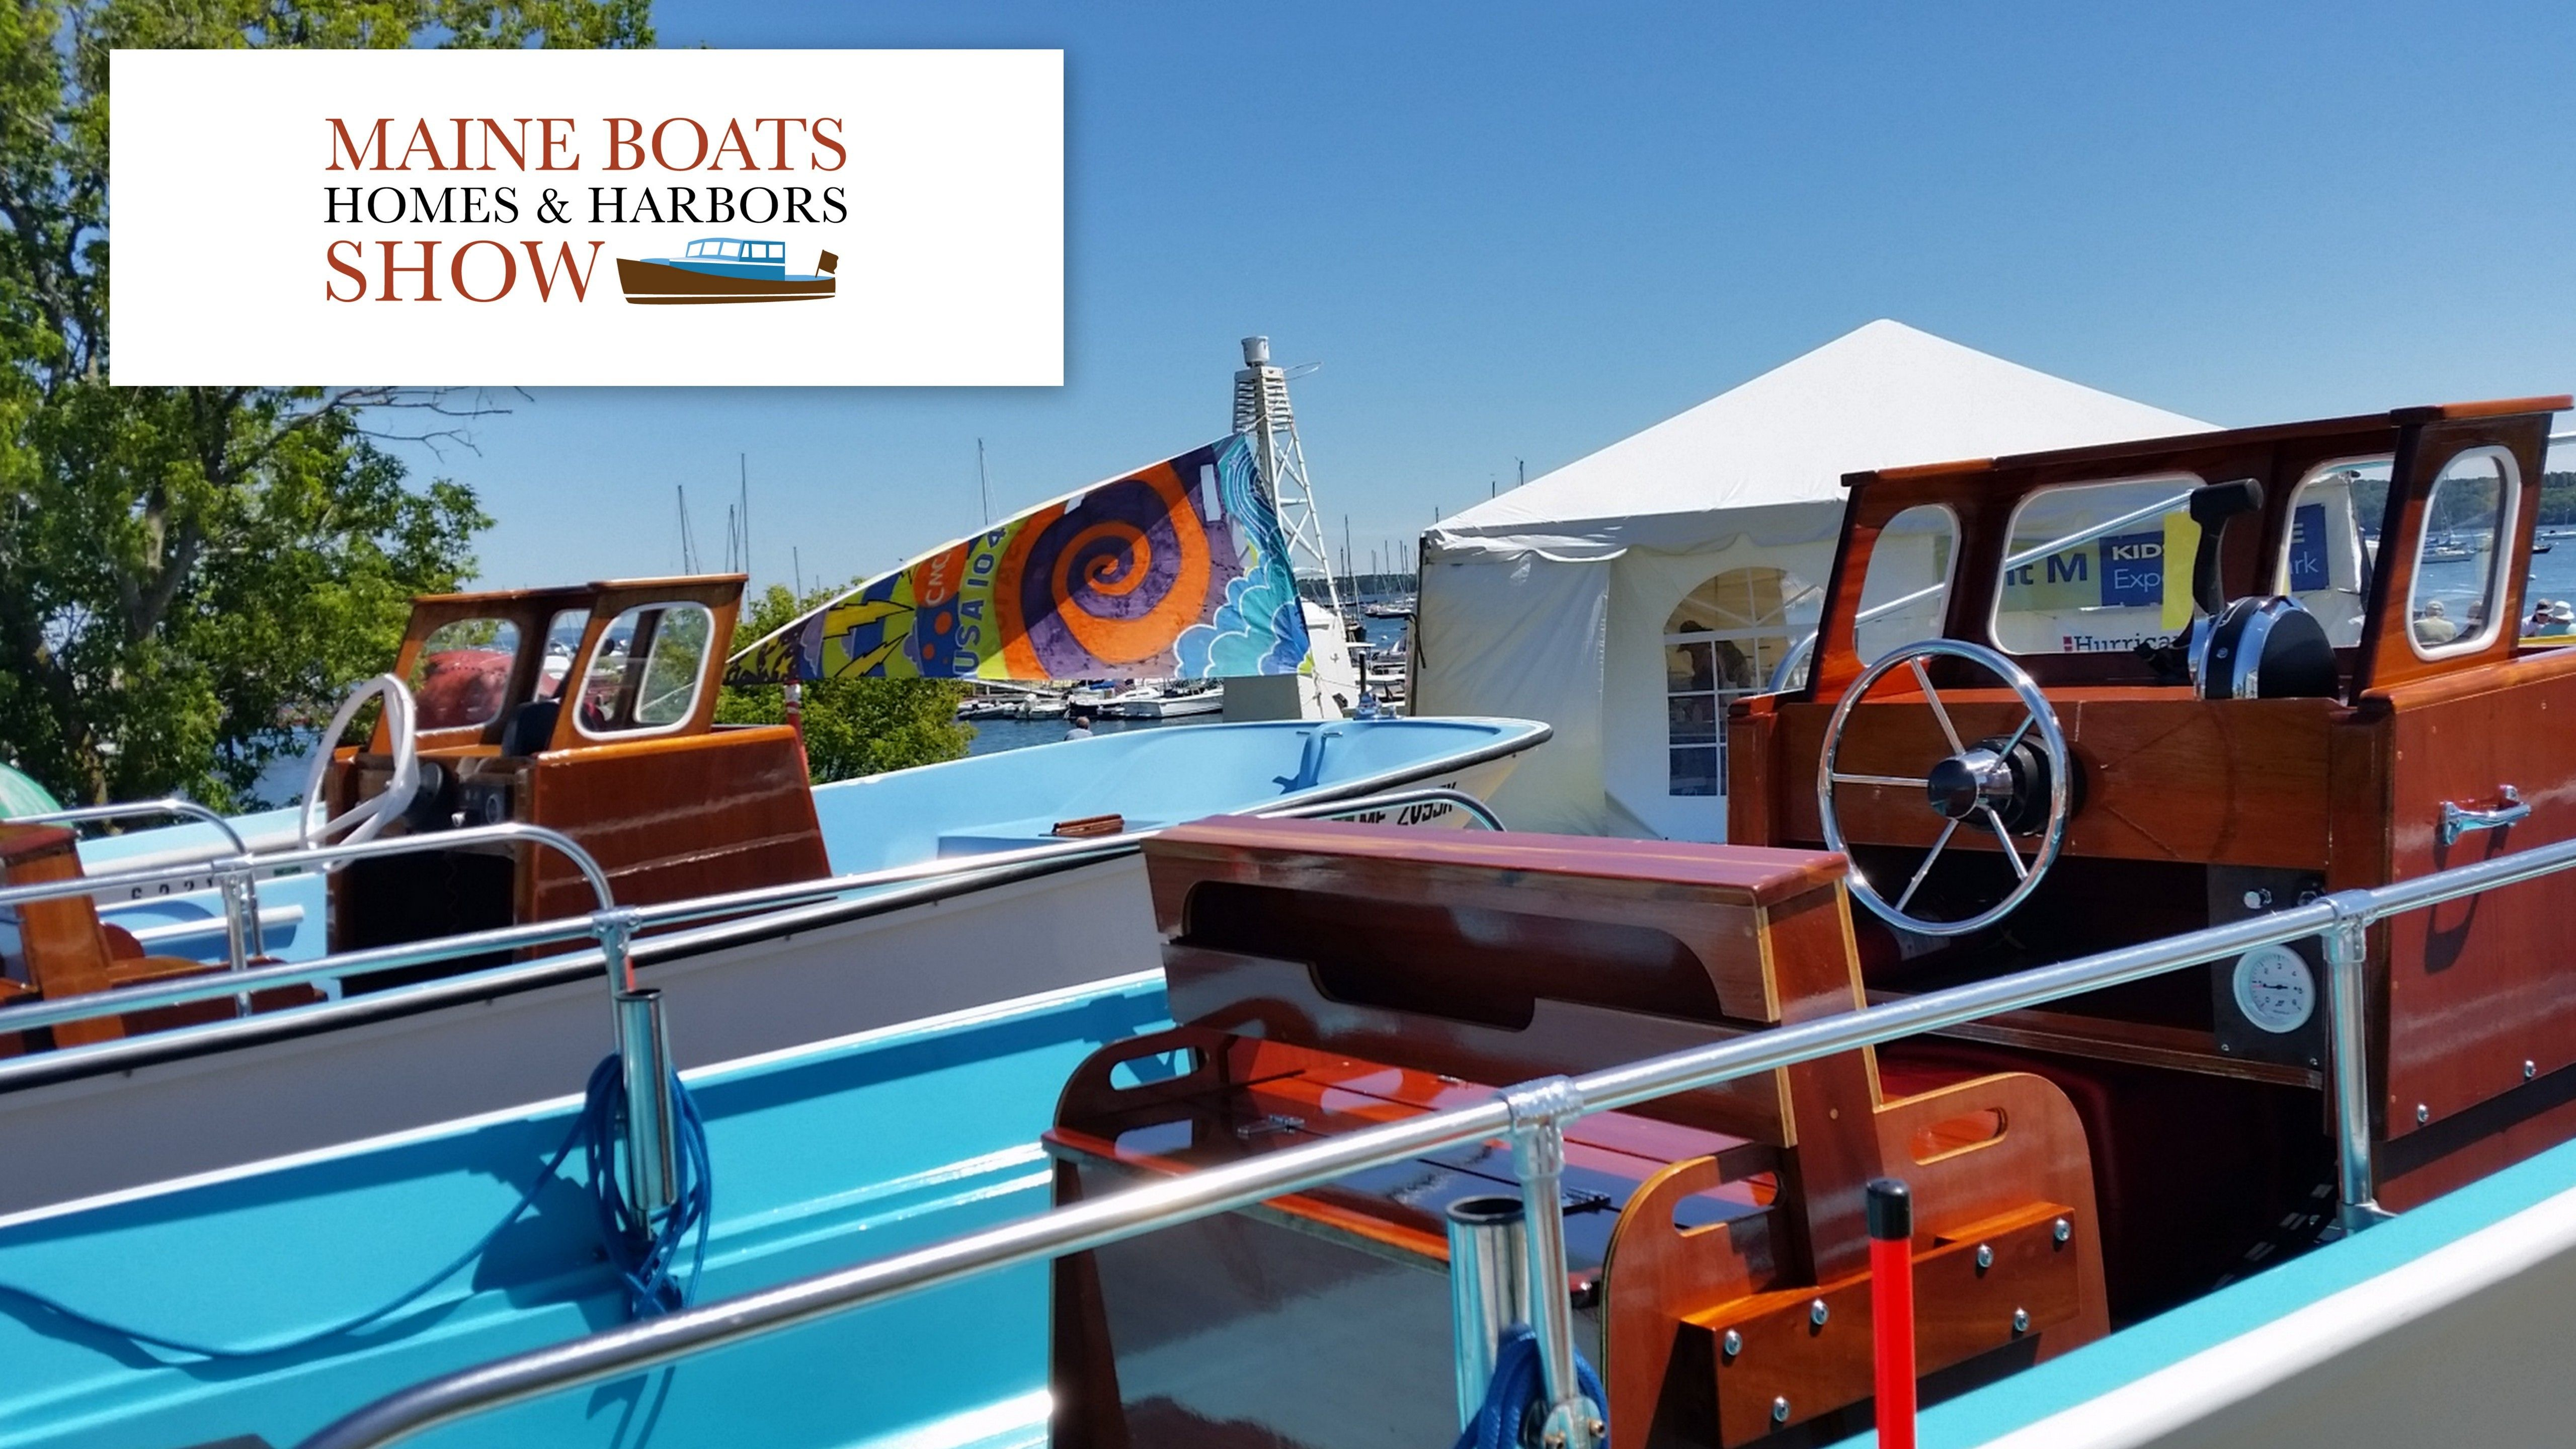 Vintage Boston Whalers At The Maine Boats Homes Harbors Show Boston Whaler Boats Boston Whaler Boat